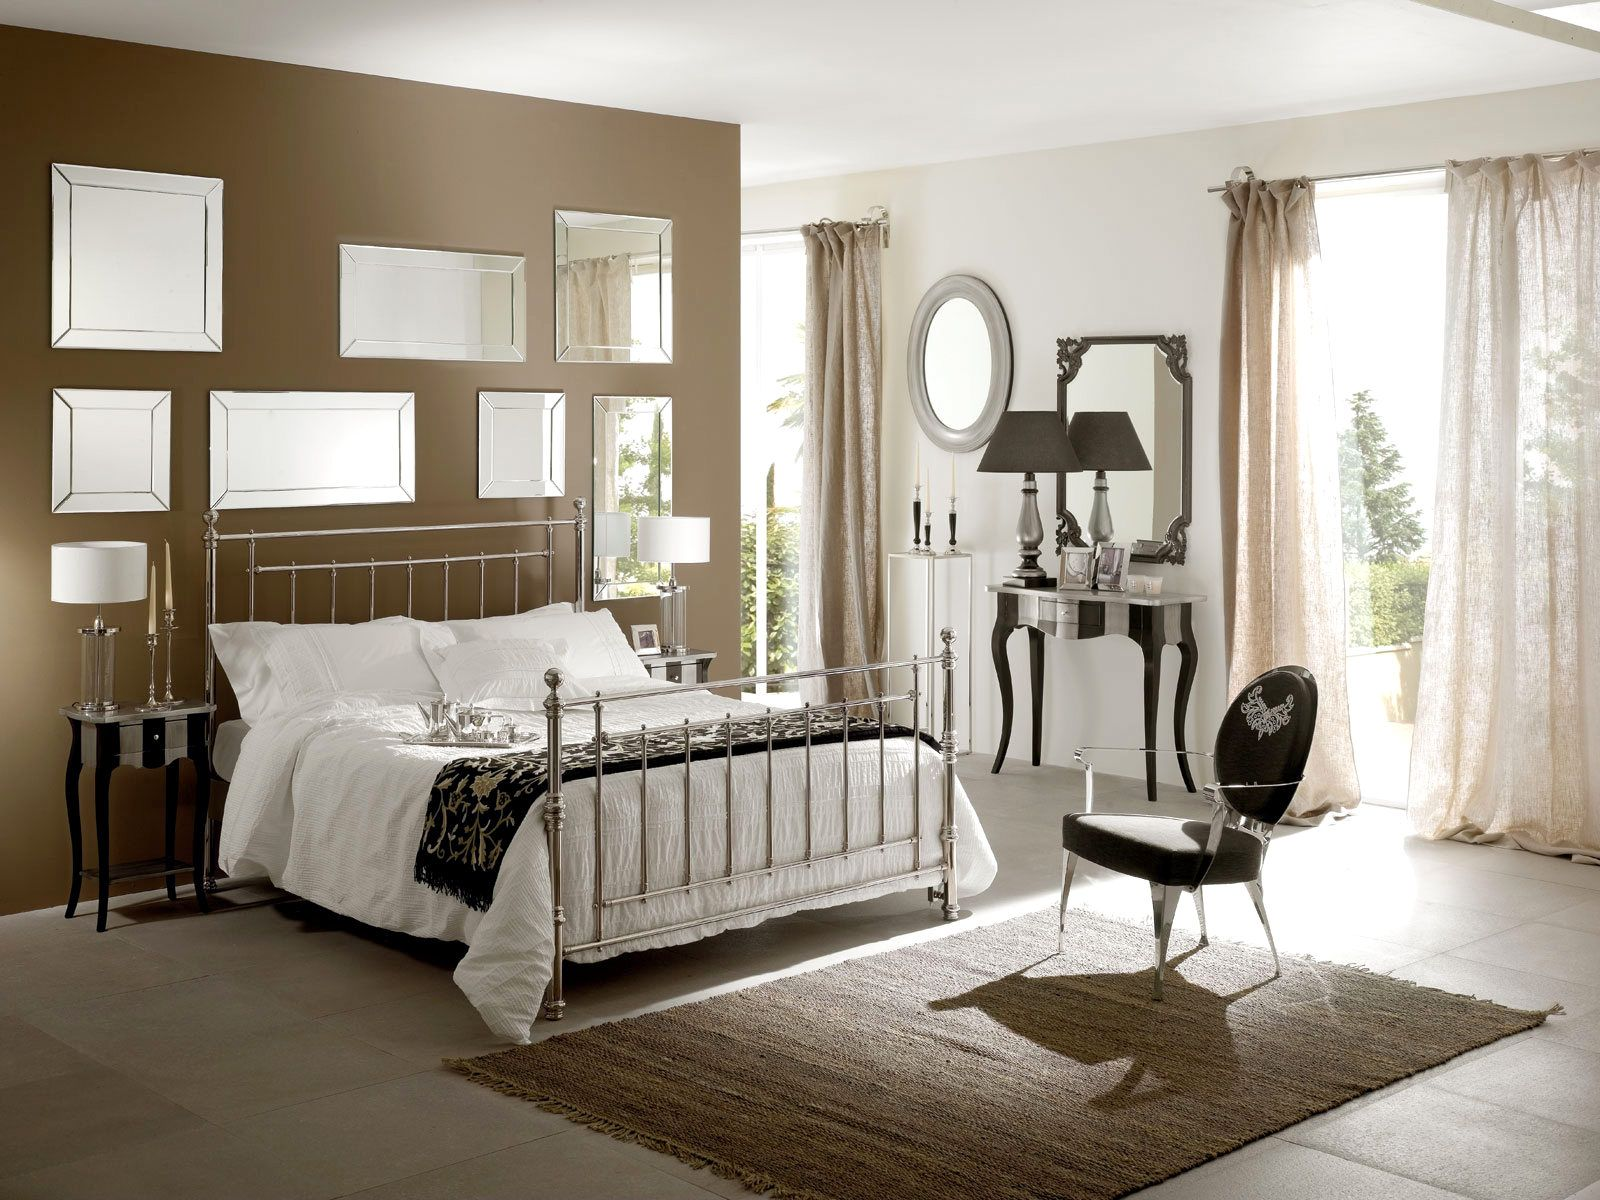 Good Pleasant And Beautiful Girls Bedroom Decorating Idea With Chic Chrome Bed  Frame And White Comforter Set And Curvy Black Nightstands Design Also Wall  Mirrors ...